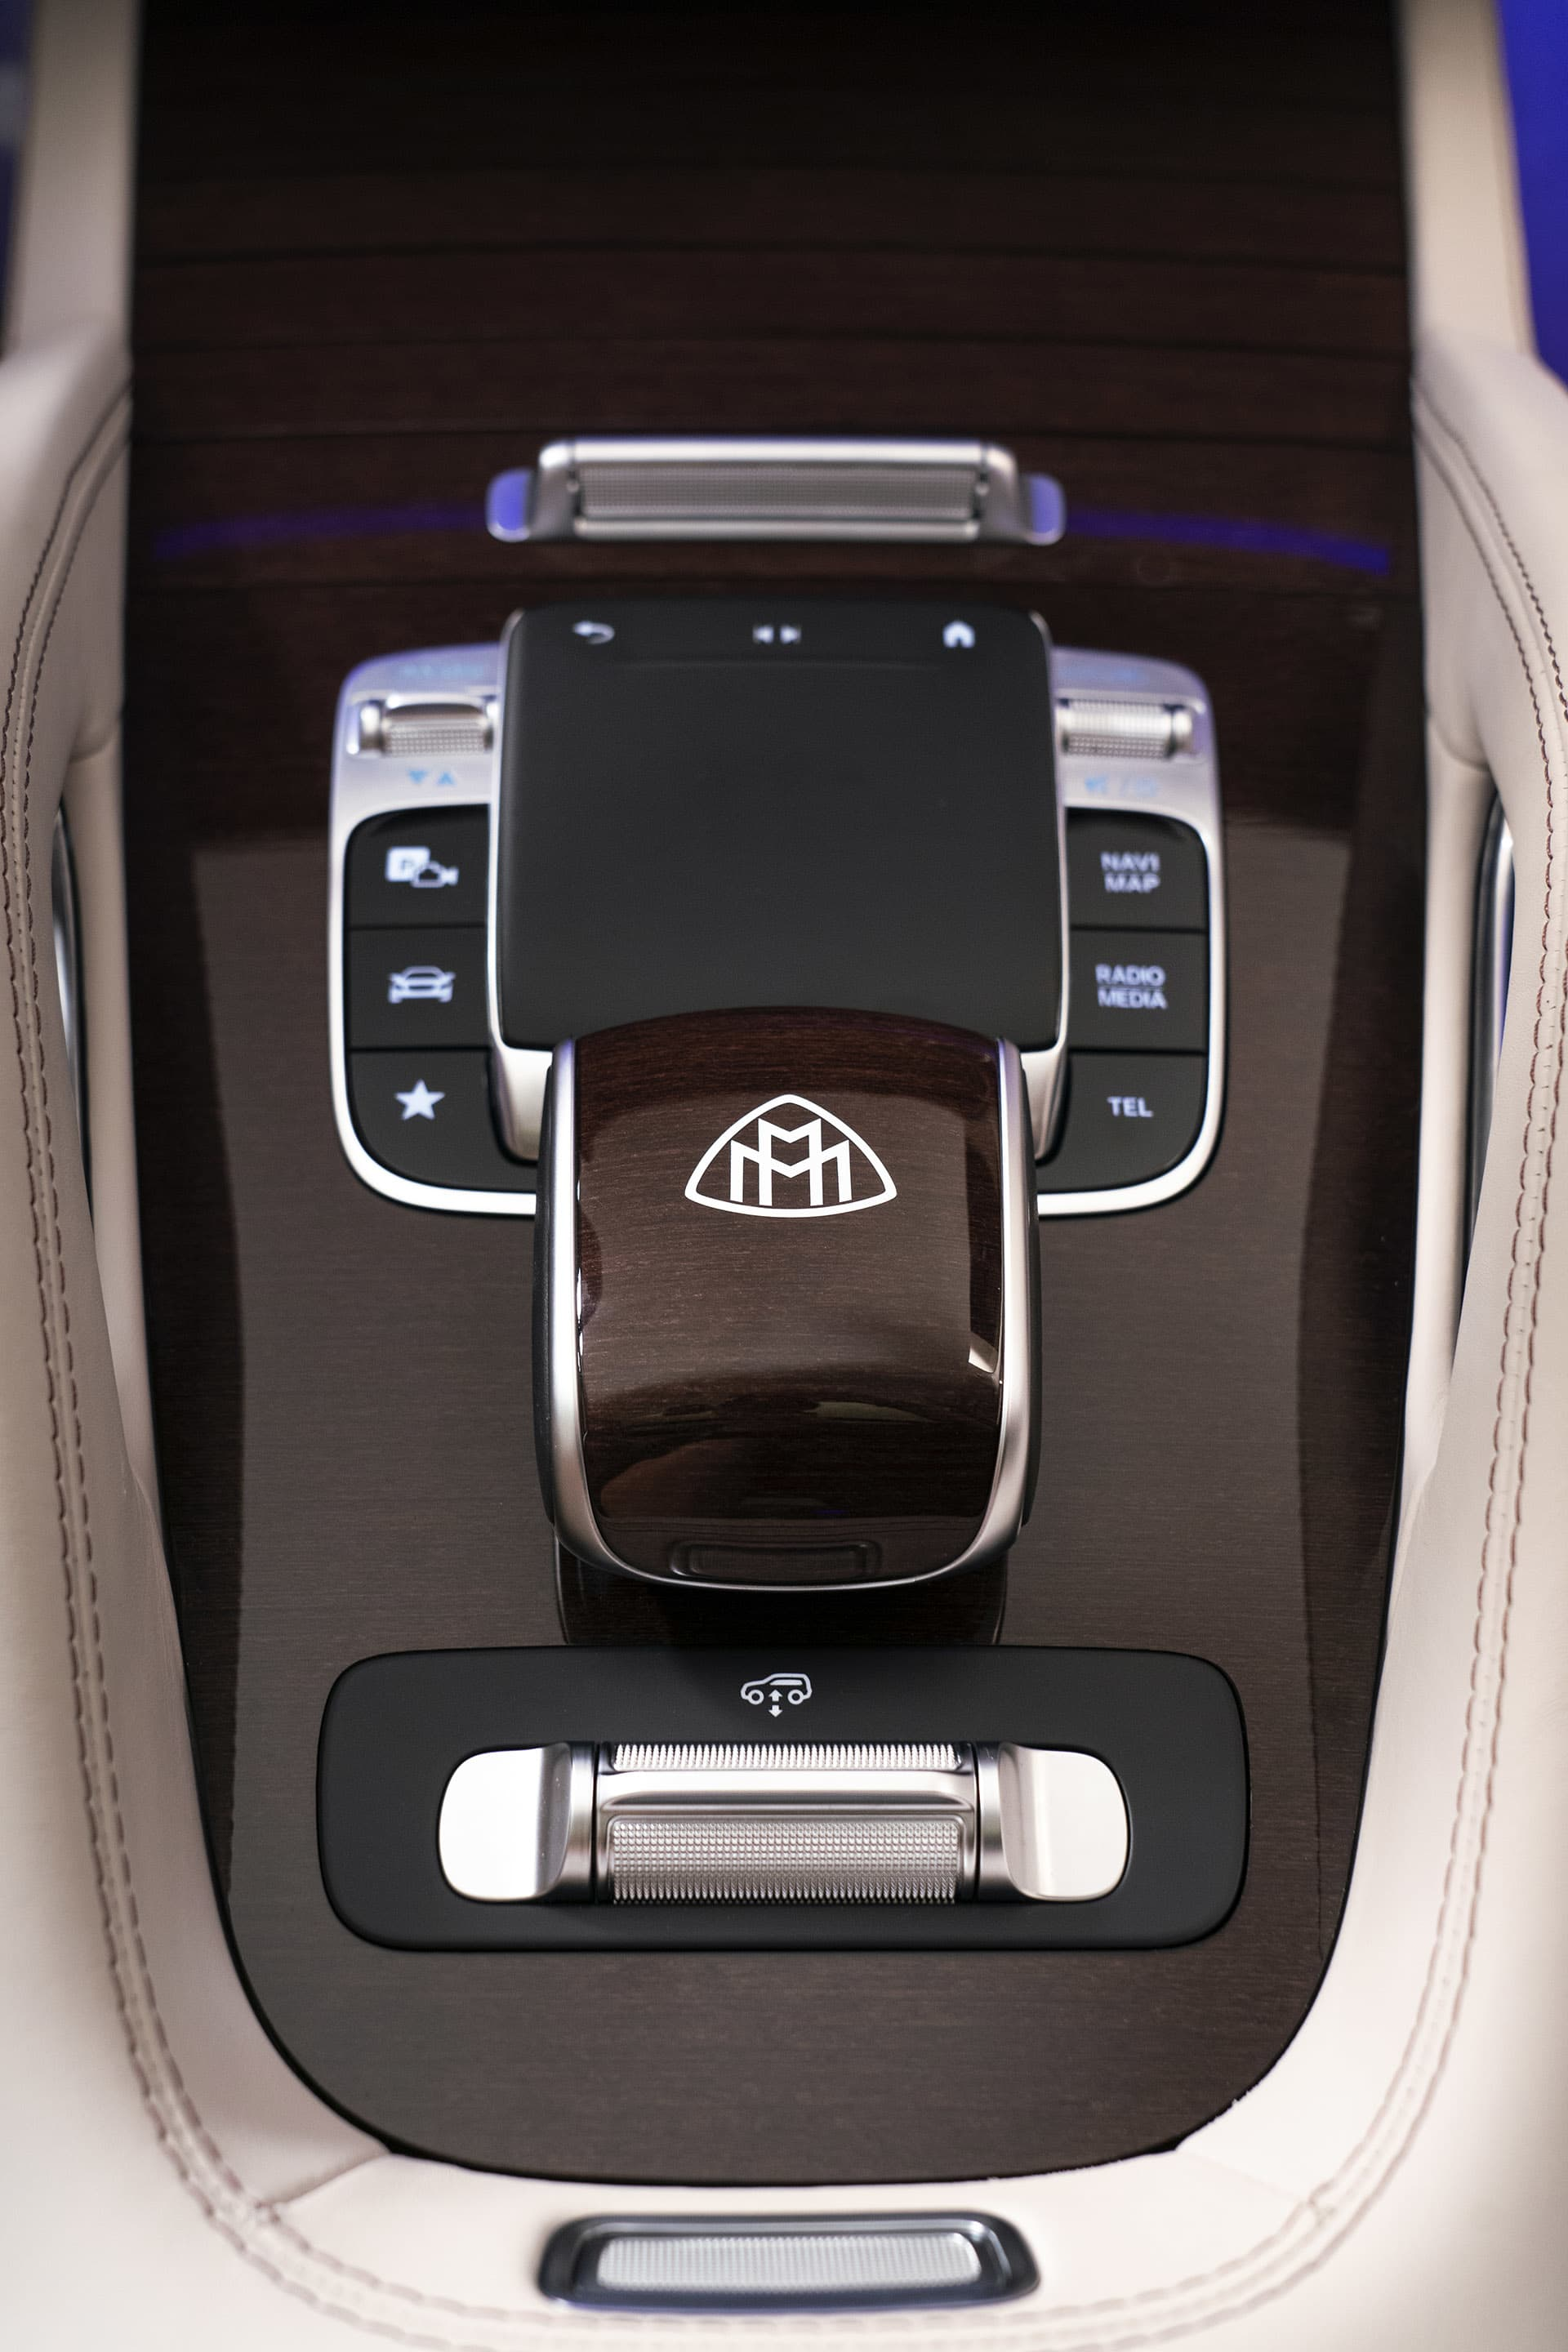 The emblem is something Maybach is especially proud of and happy to place in several places on the car, like here on the gear selector.